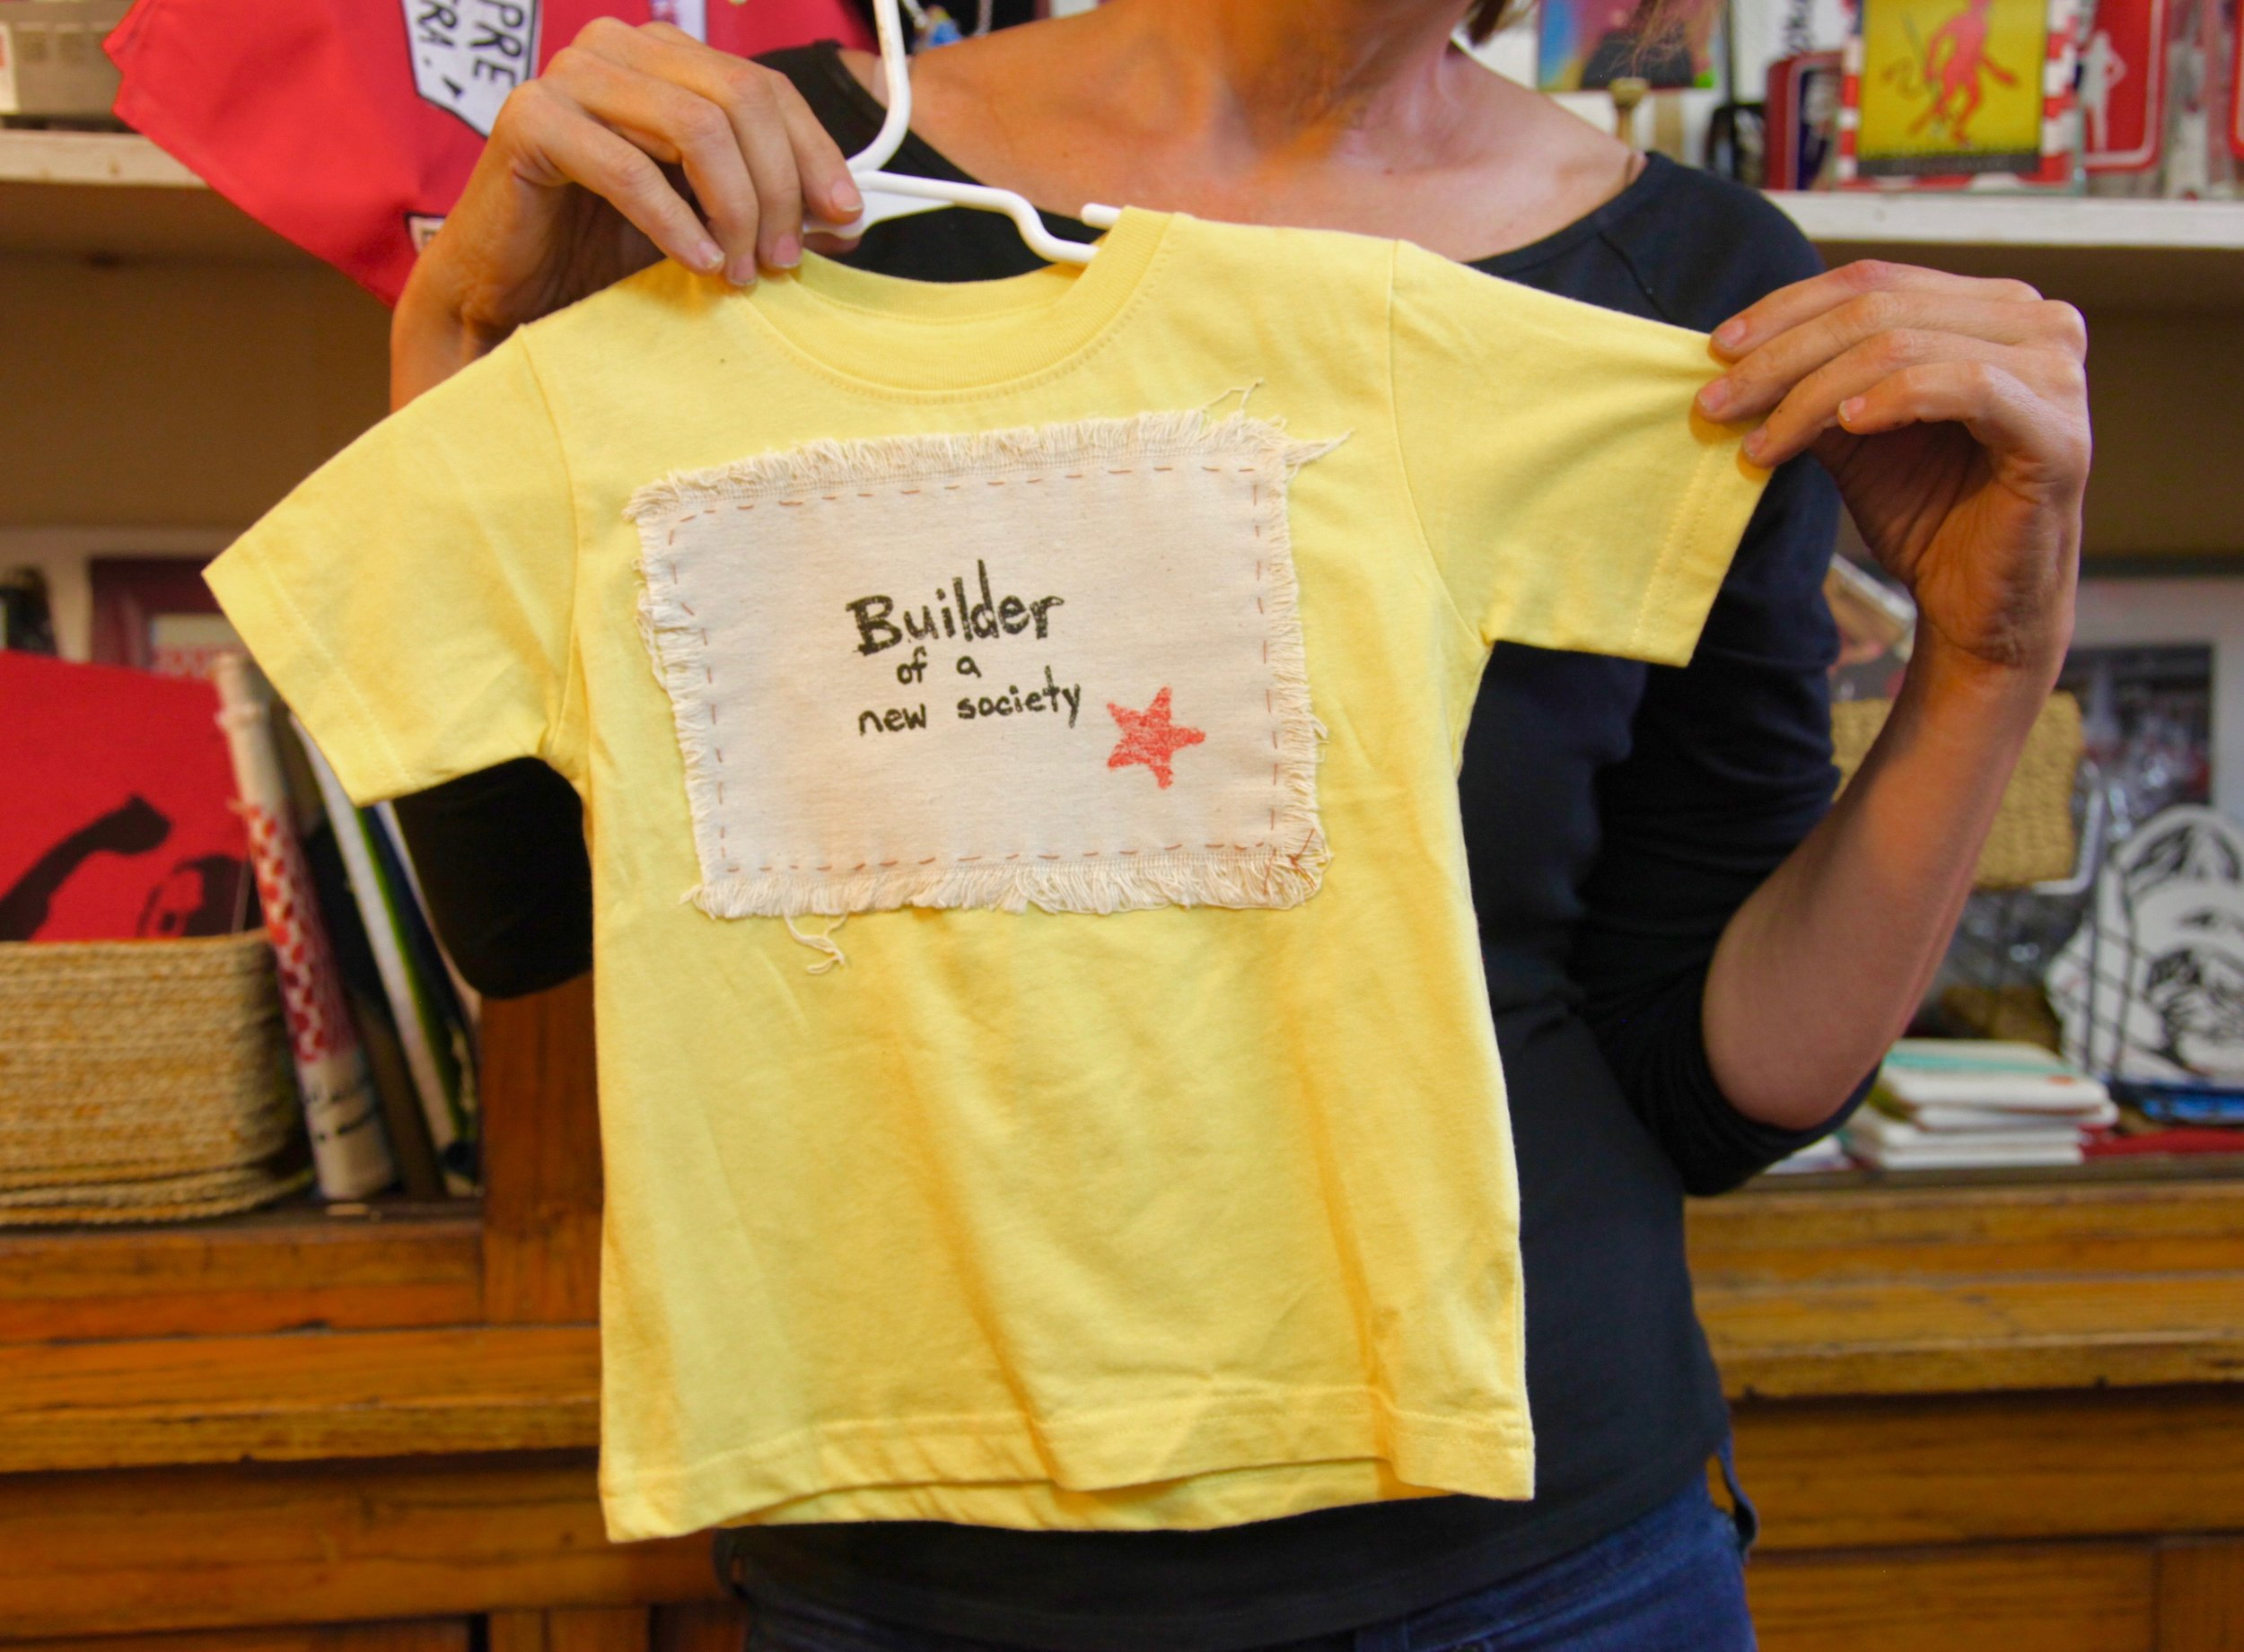 """""""The whole store really looks forward and positive … That's one of the reasons you're seeing a lot of baby clothes. Babies are the future."""" Stephanie noticed that many people are wary of politicizing children. But she sees it as a """"playful and fun way to share political culture."""" With her array of shirts with slogans like """"Builder of a new society,"""" Stephanie hopes to show her belief that it's possible to raise kids progressively and politically."""